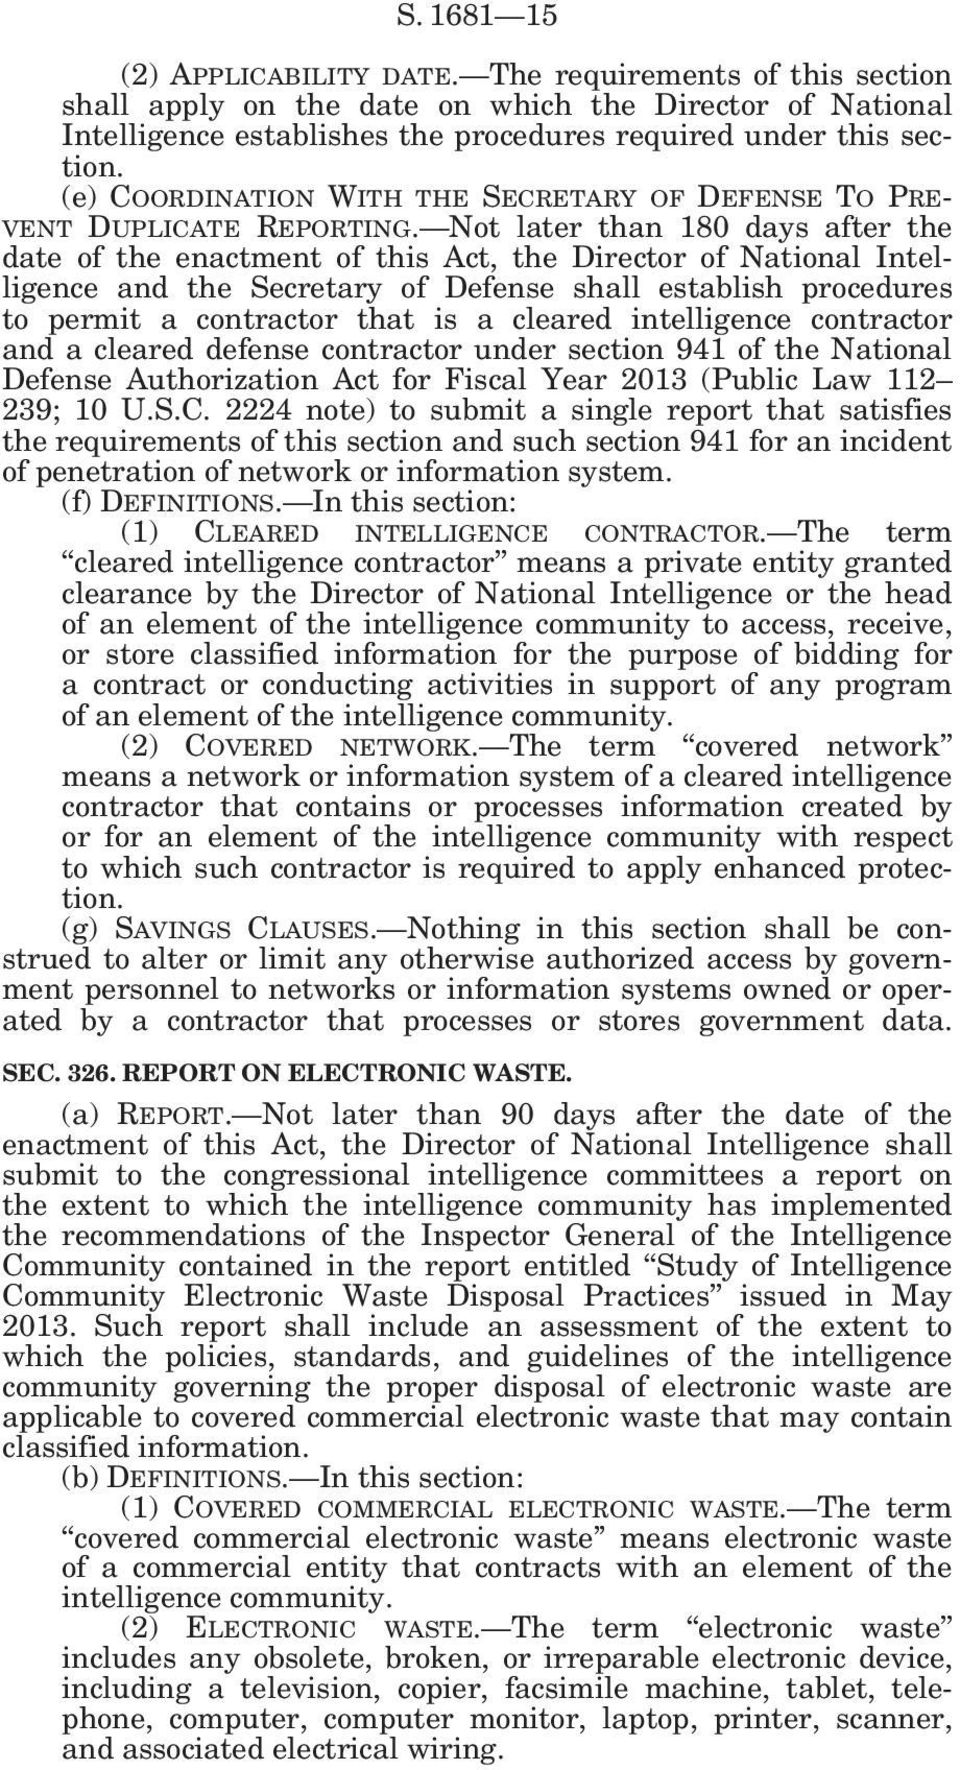 Not later than 180 days after the date of the enactment of this Act, the Director of National Intelligence and the Secretary of Defense shall establish procedures to permit a contractor that is a